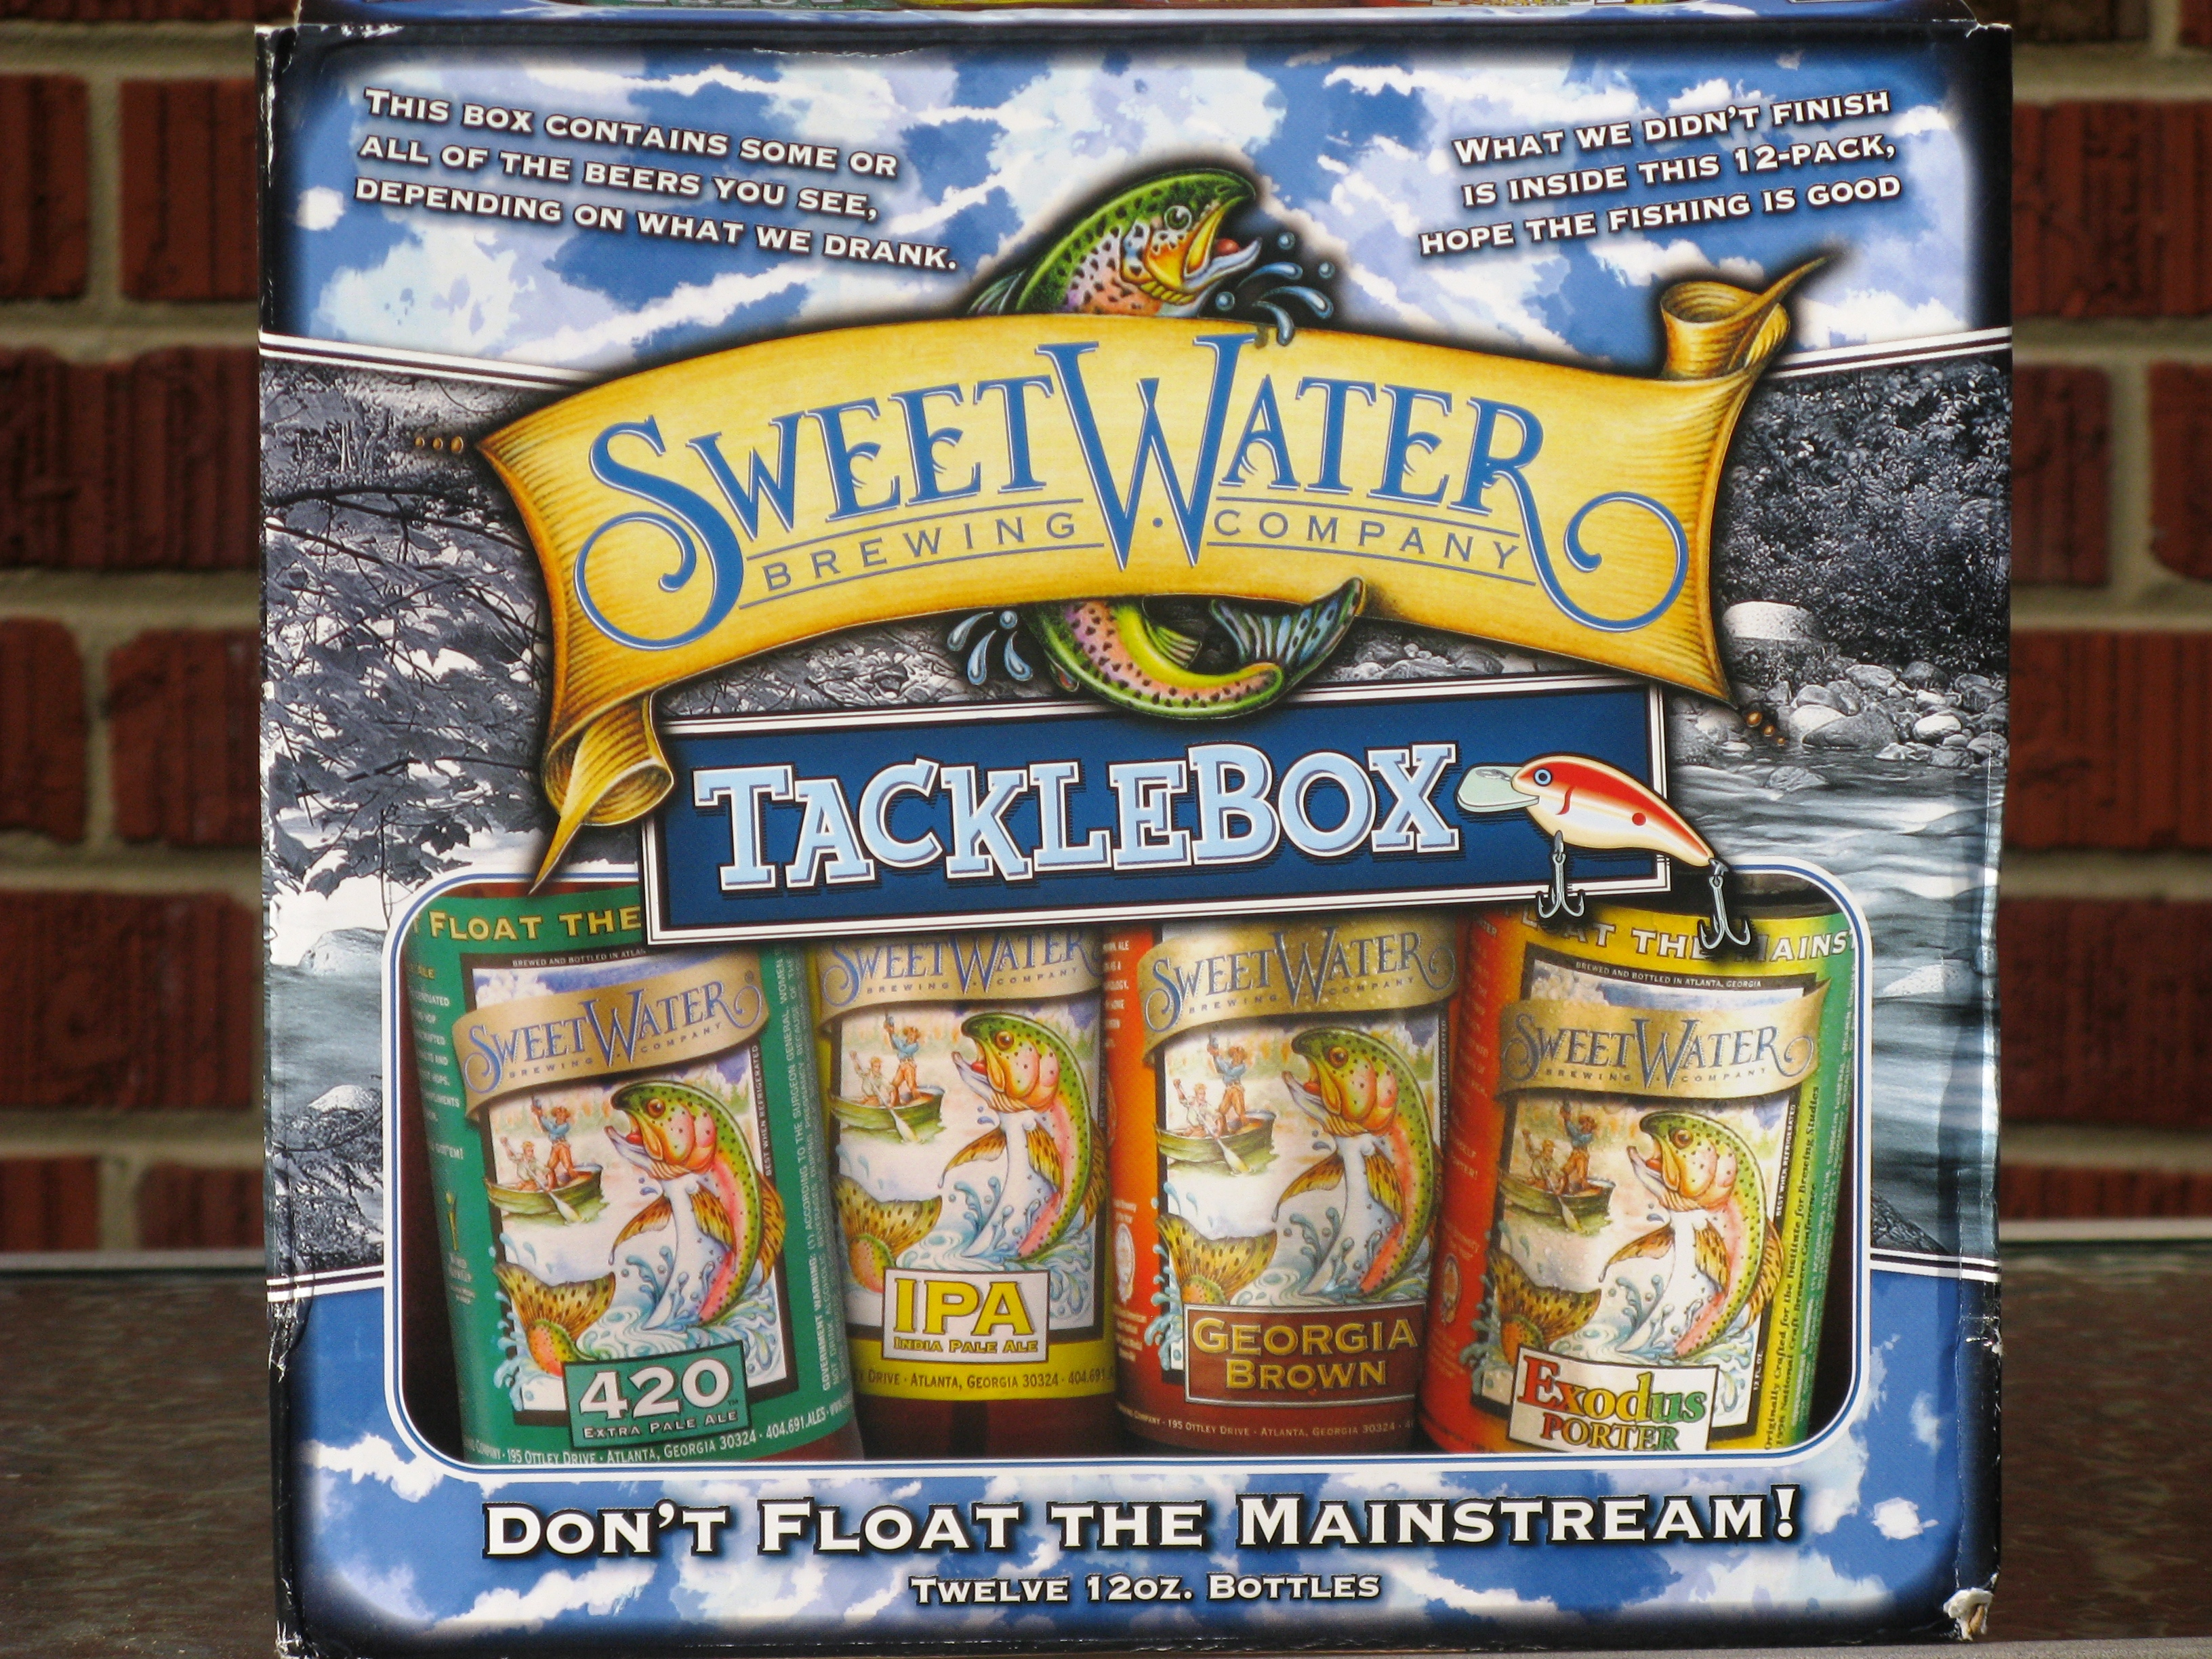 SweetWater Brewing Company Tackle Box | Boa Beer Blog